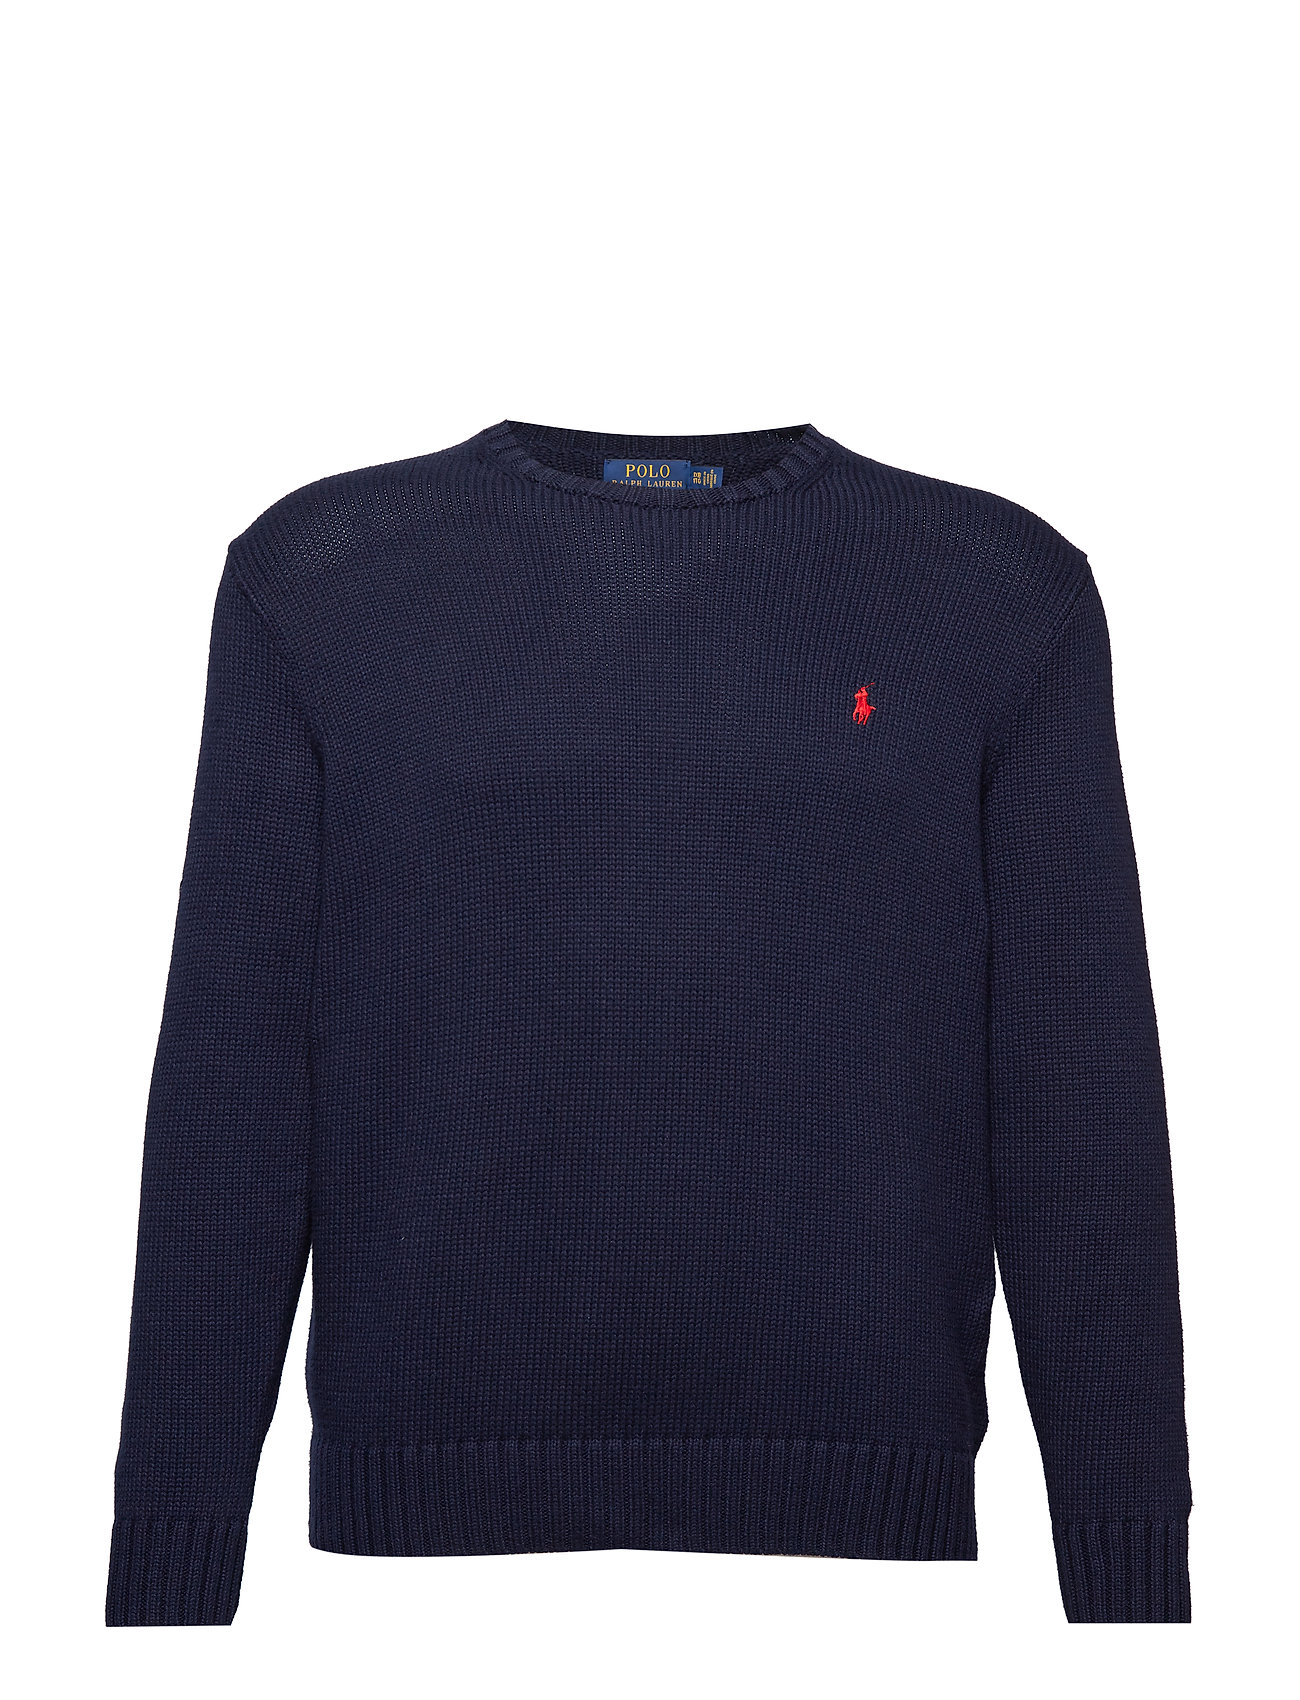 Polo Ralph Lauren Big & Tall Cotton Crewneck Sweater - HUNTER NAVY